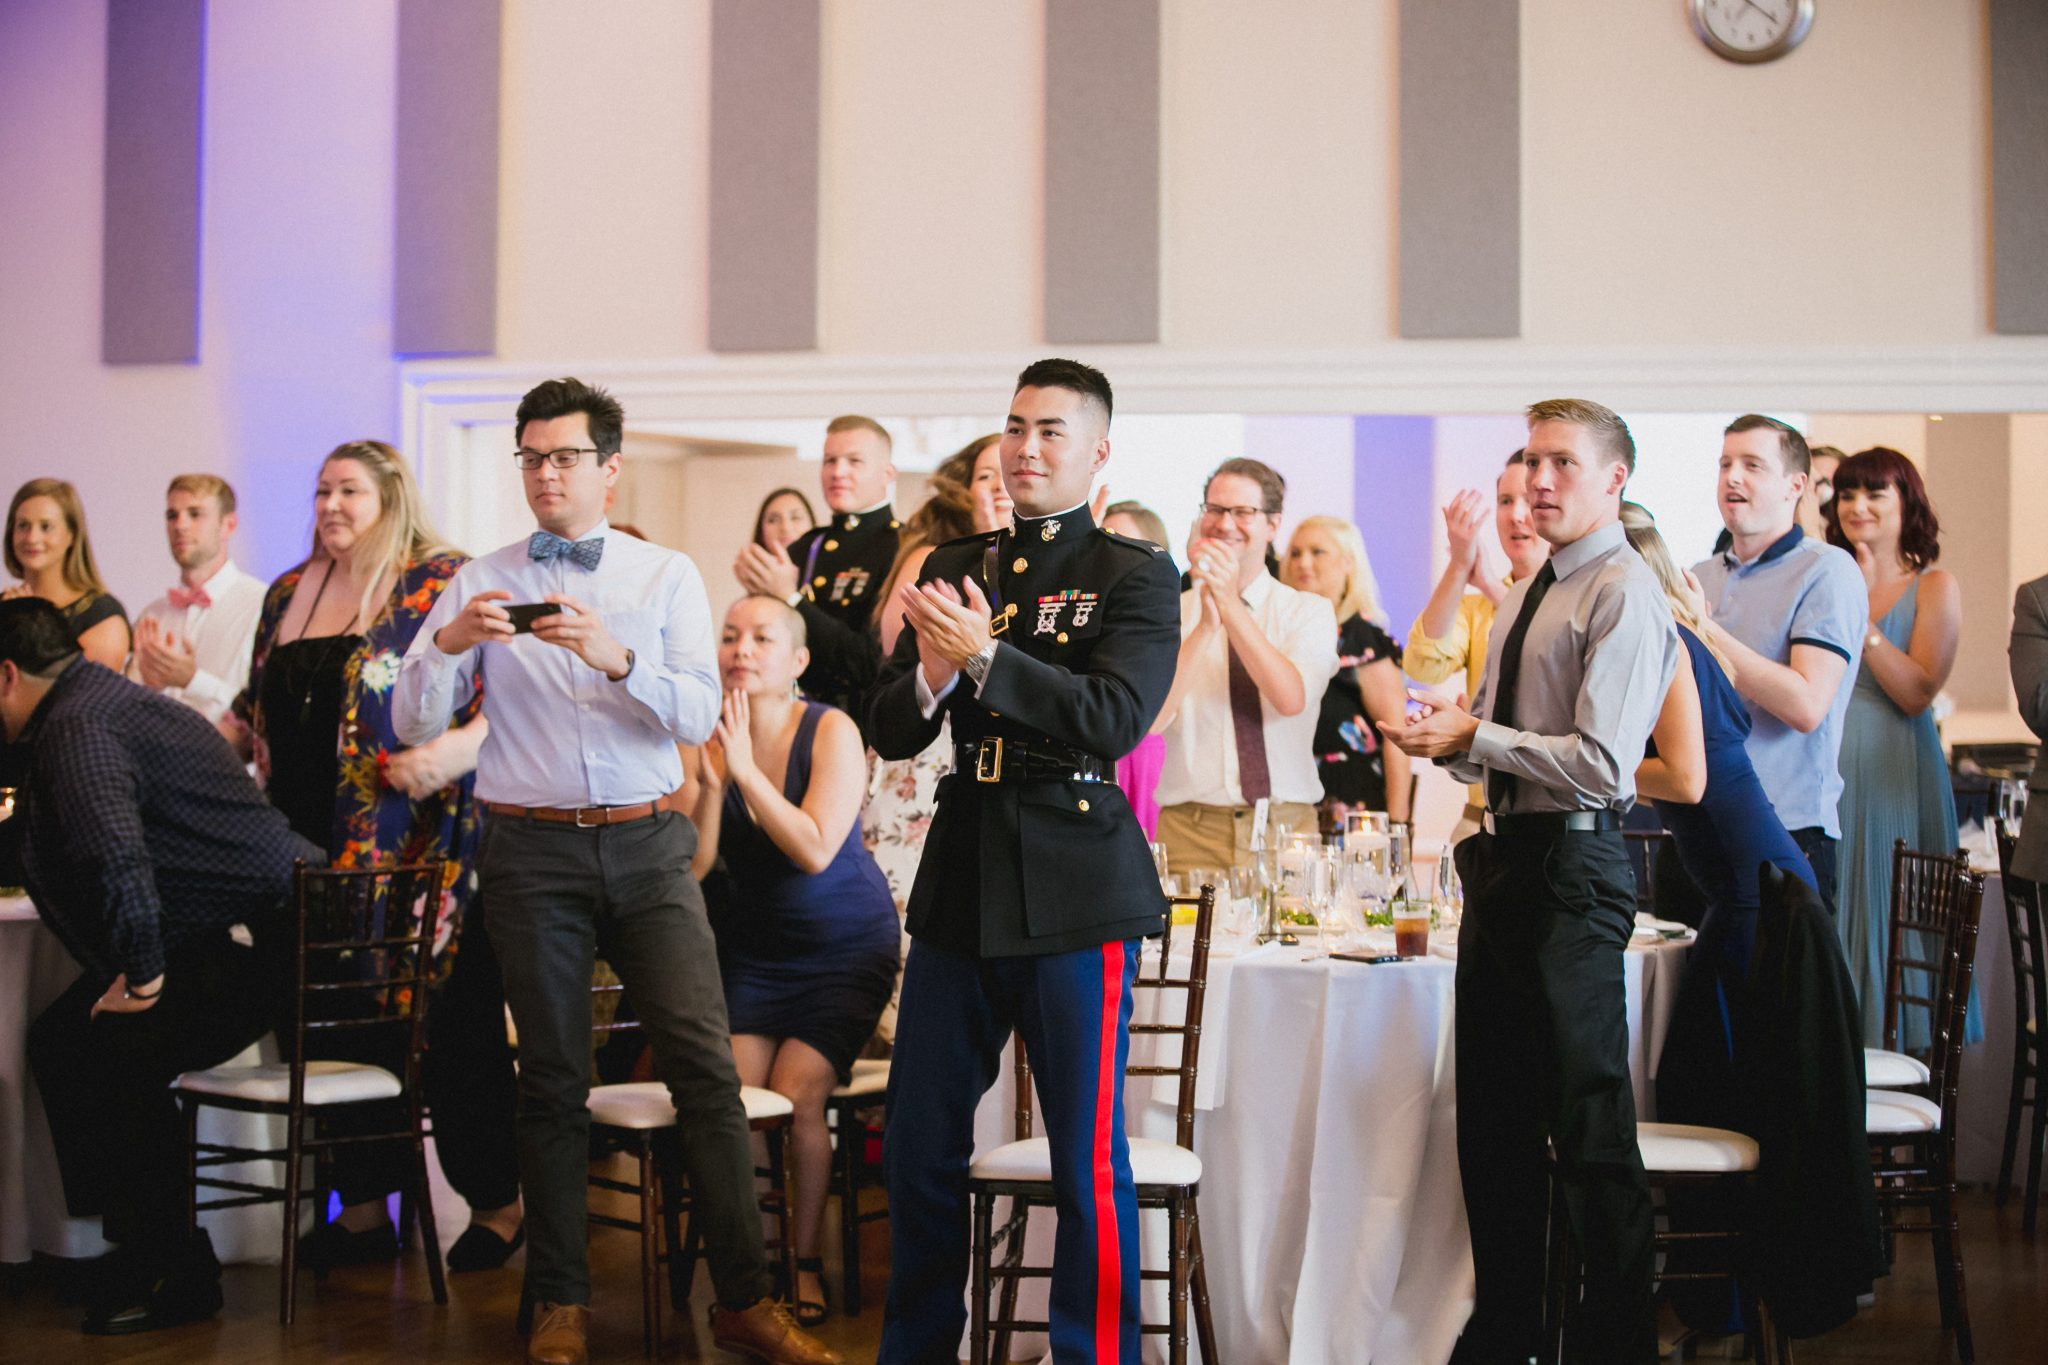 Wedding guests clapping at the end of the ceremony